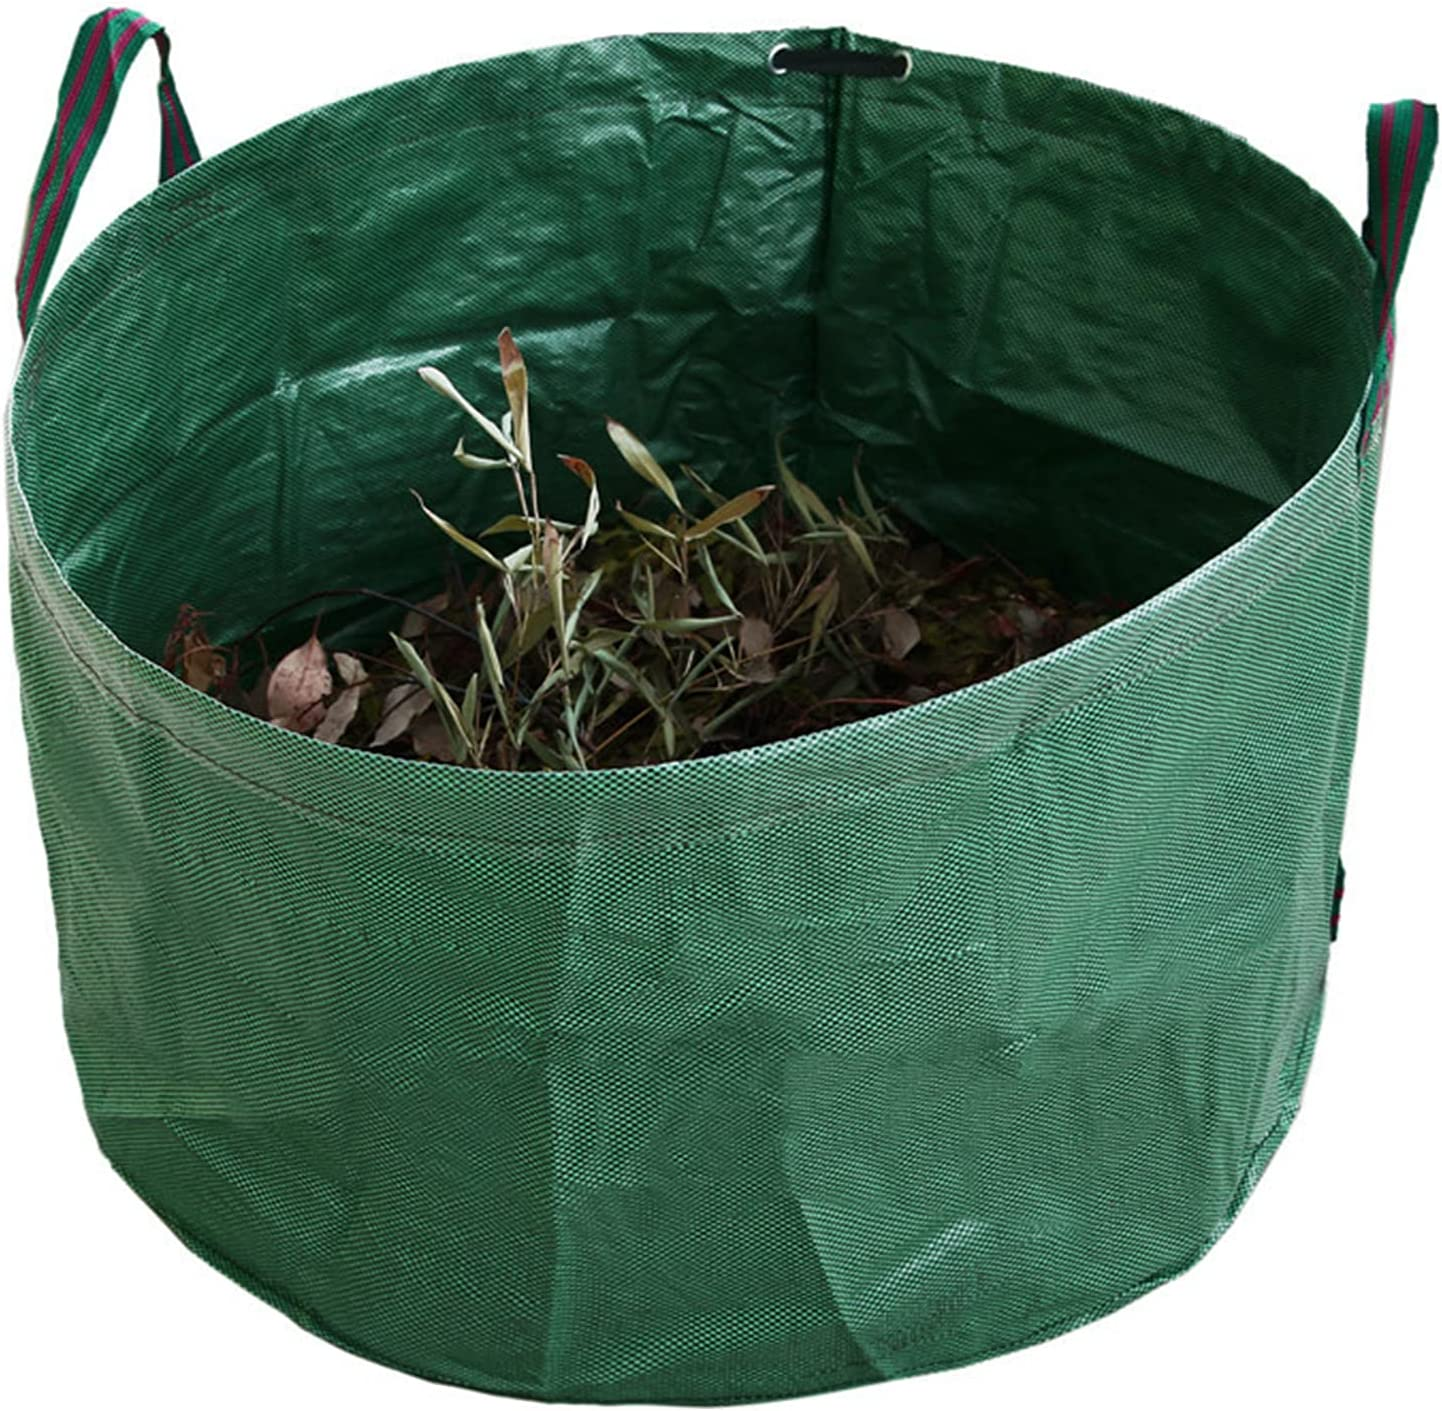 LPAYOK 3-Pack 63 Gallons Reusable Garden H19 New Shipping Free Shipping At the price Bags D31 Waste in